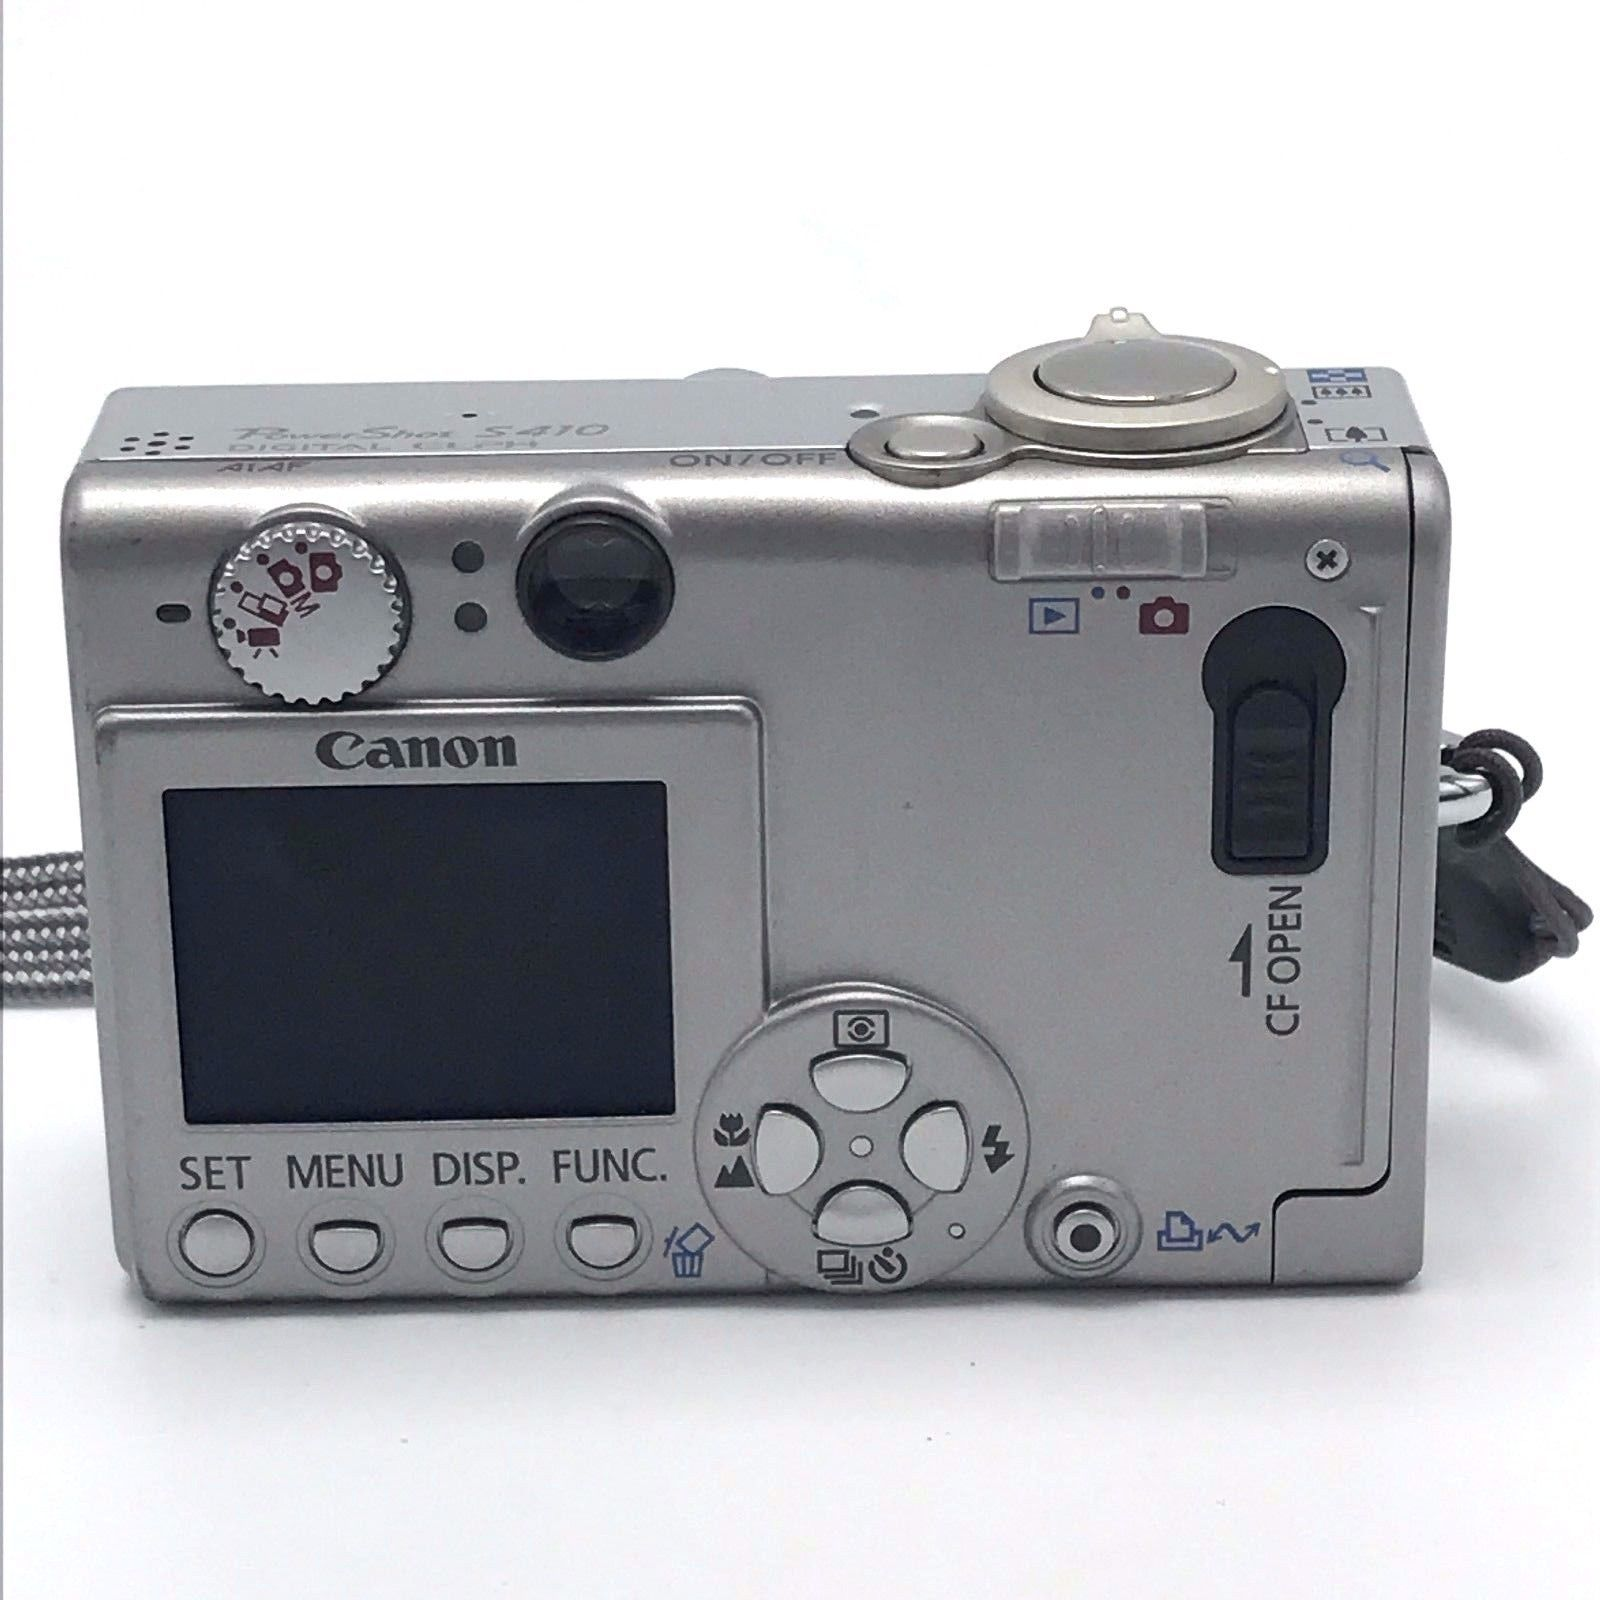 canon powershot s410 bundle user manual and 50 similar items rh bonanza com canon powershot a520 manual pdf canon powershot a510 manual